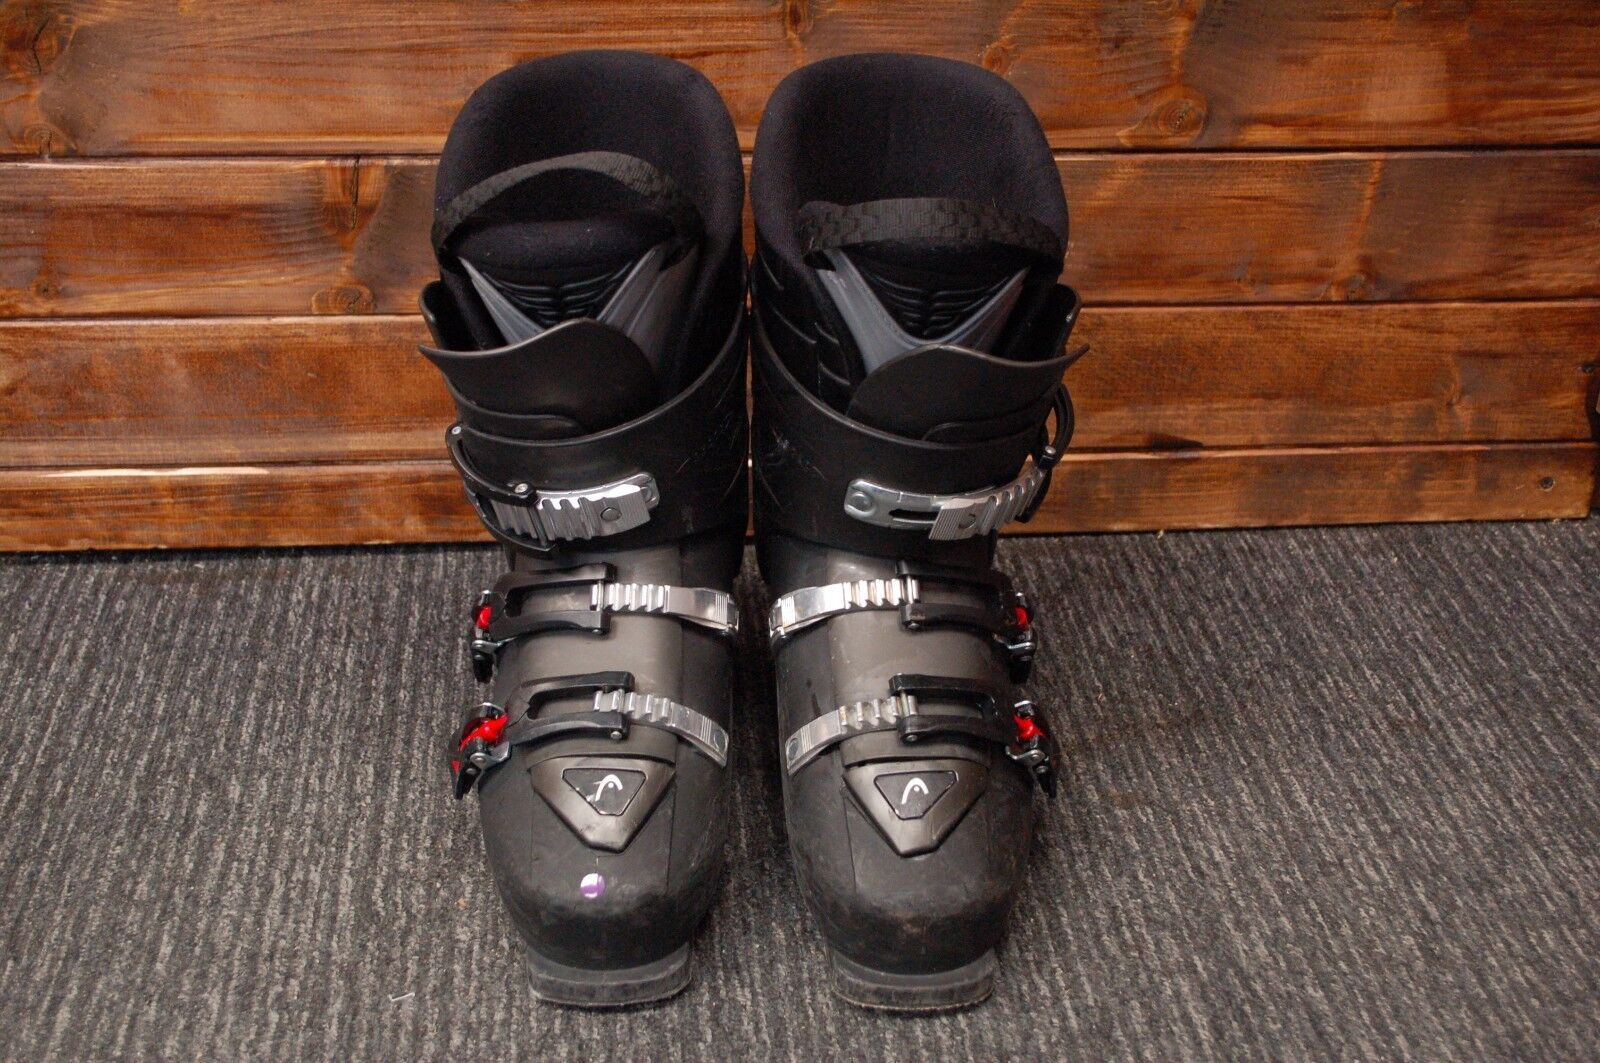 HEAD FX 65 HT Ski Stiefel (US 9; EU EU EU 42.5; UK 8.5) 6eef00